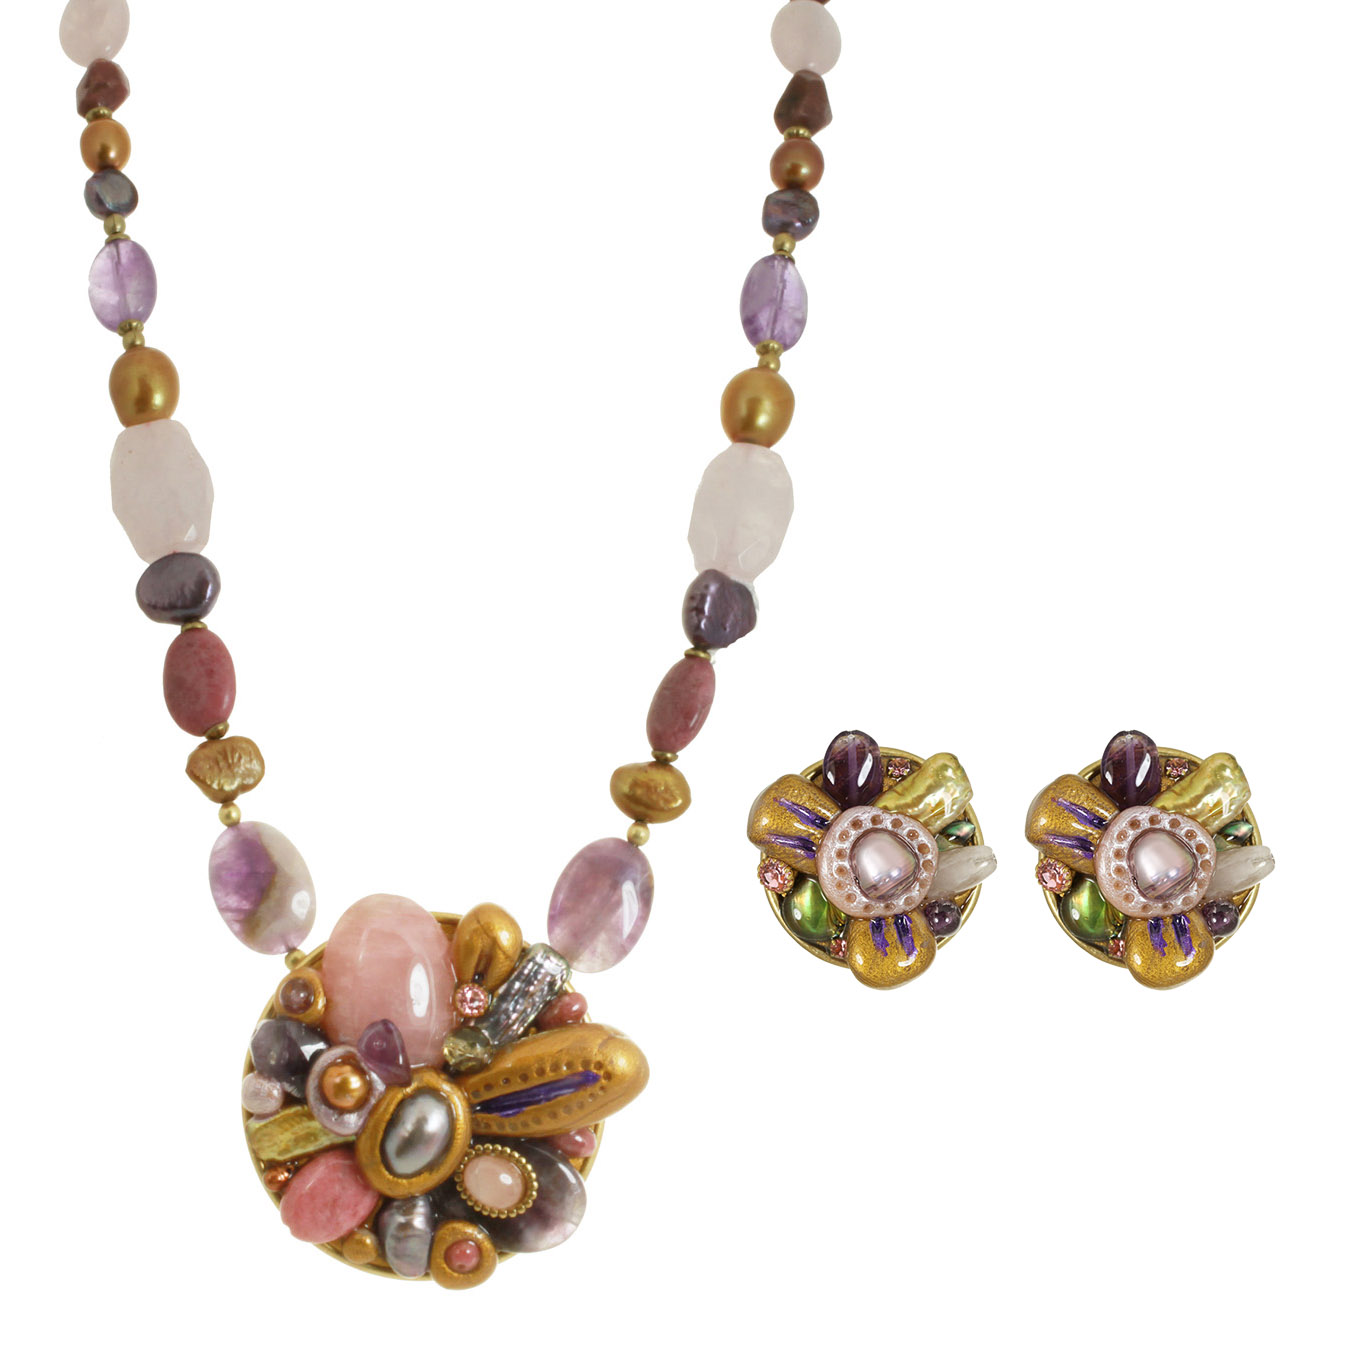 Moon Flower Clip Earrings and Necklace Set